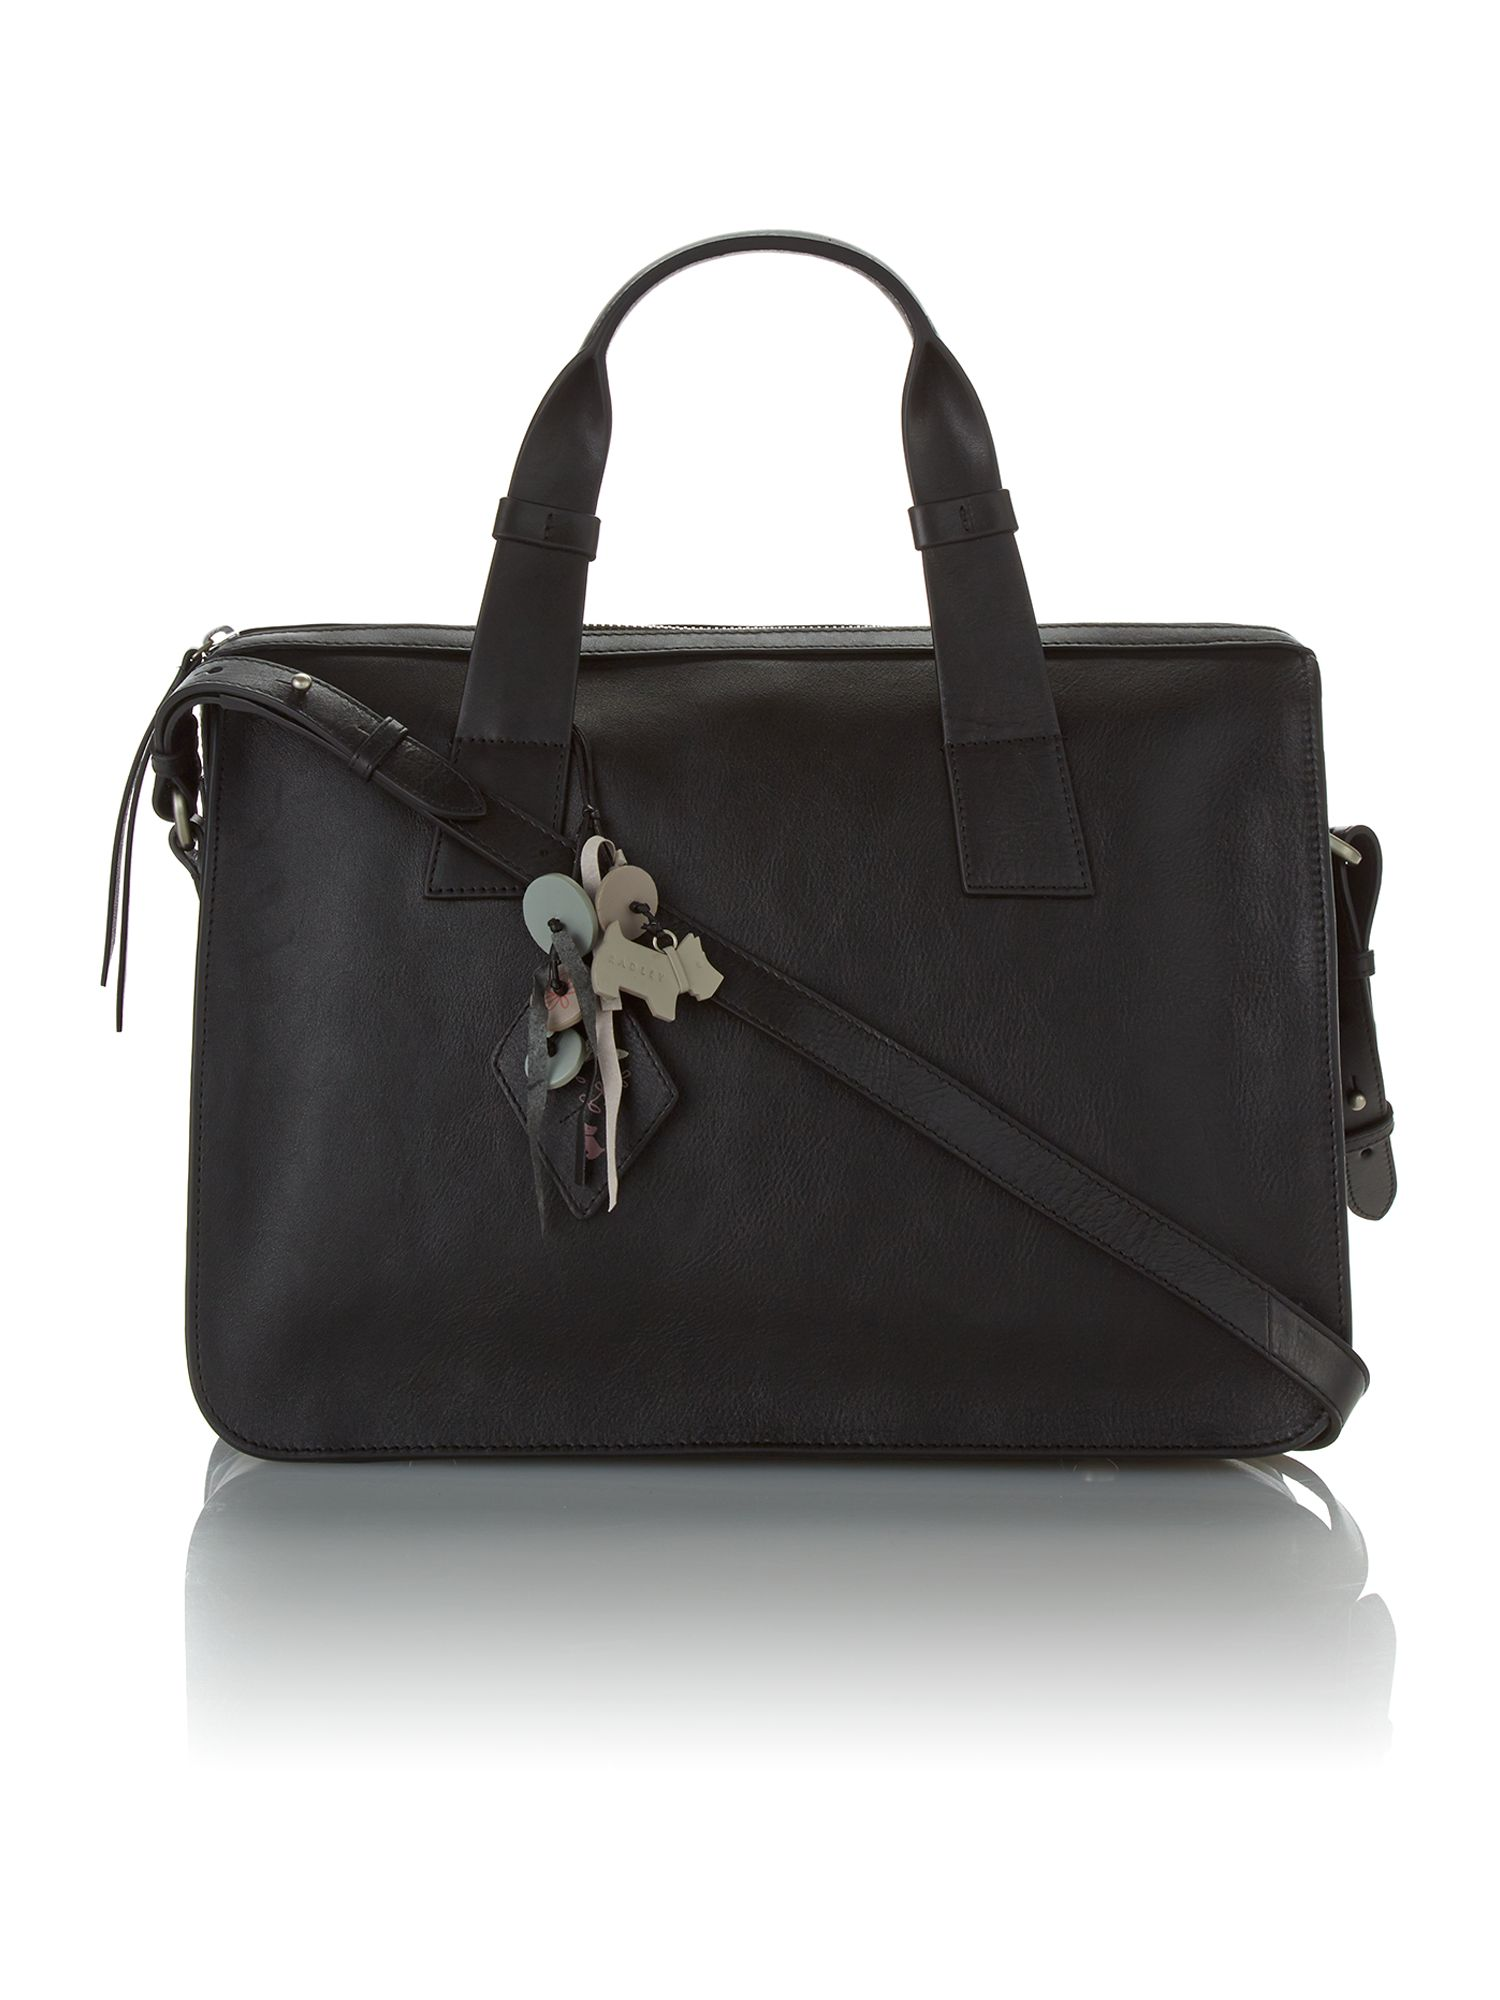 Maiden black large leather cross body tote bag